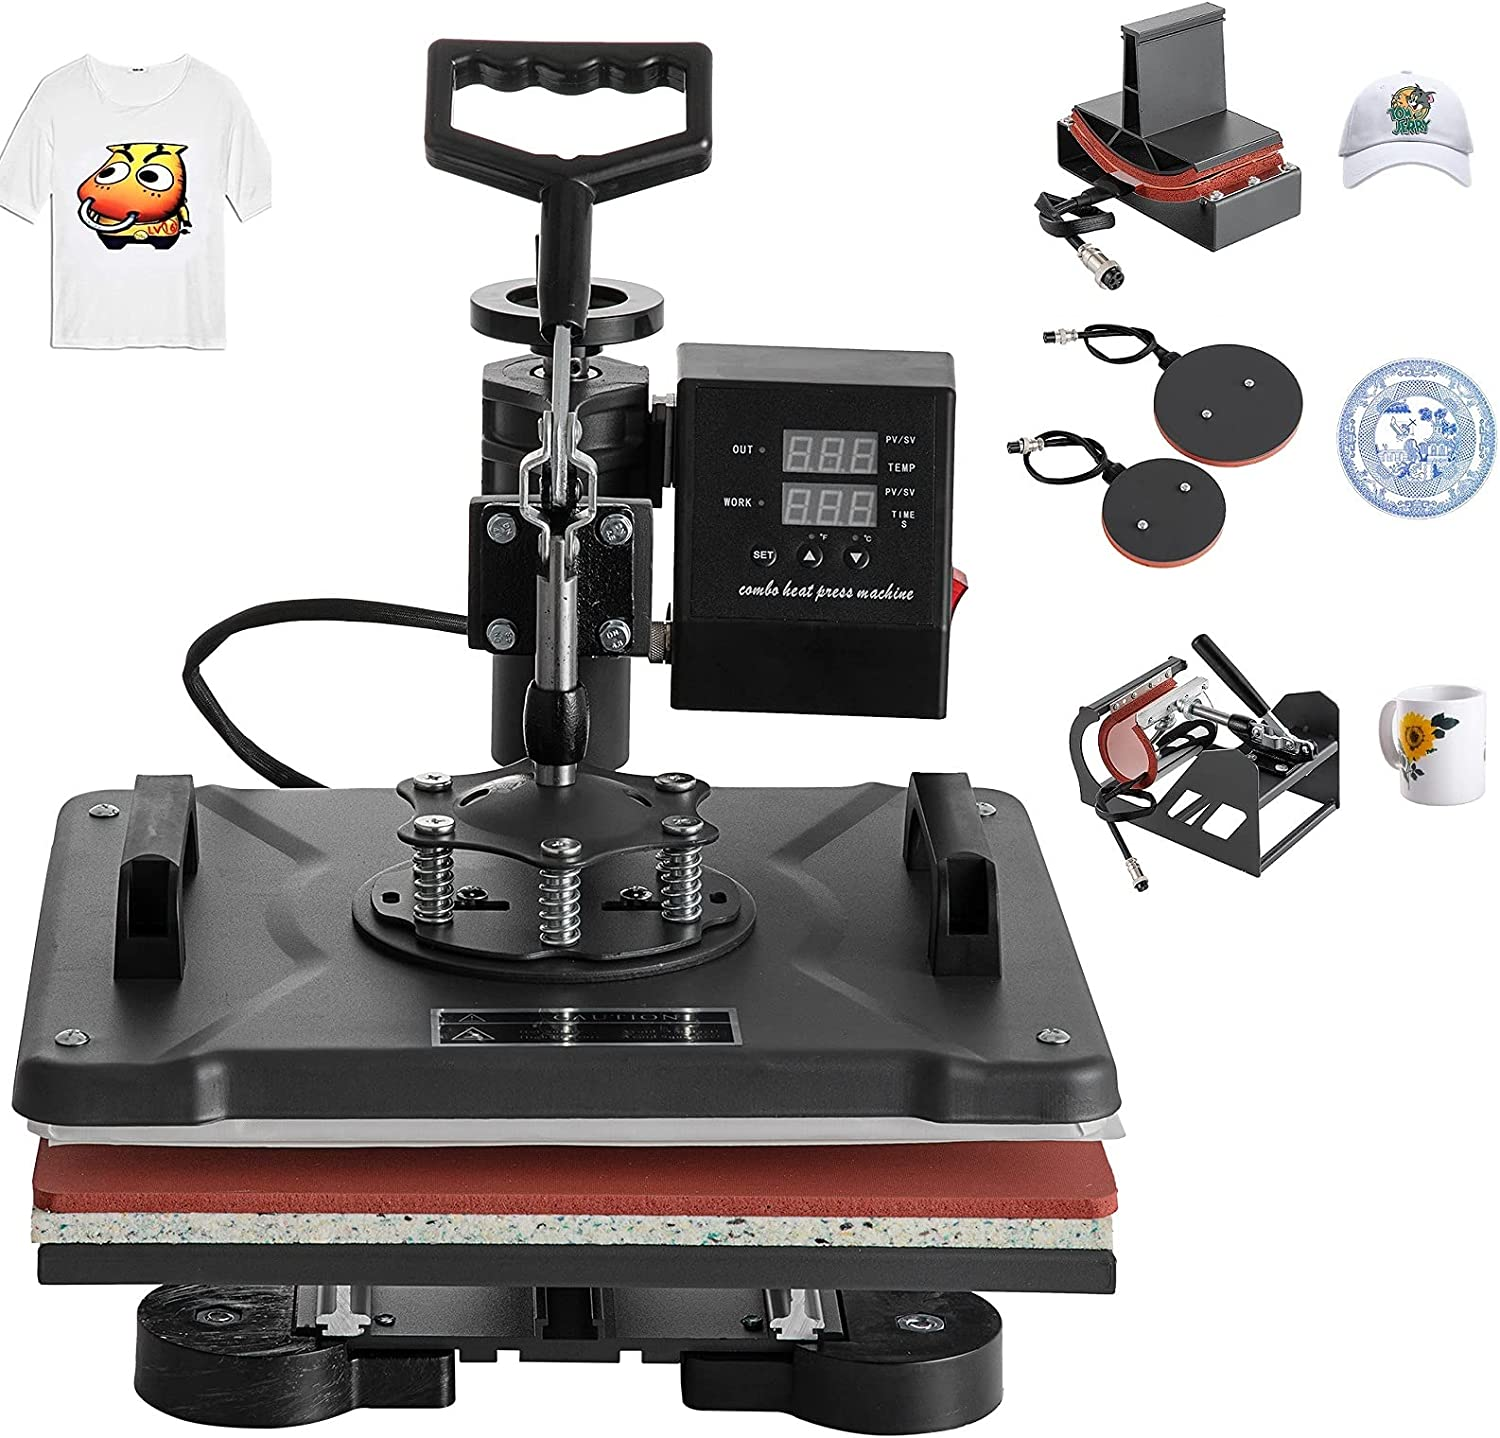 Hihone 5 in 1 Heat Press Sublimation Challenge the In a popularity lowest price Trans Digital 12 x 15